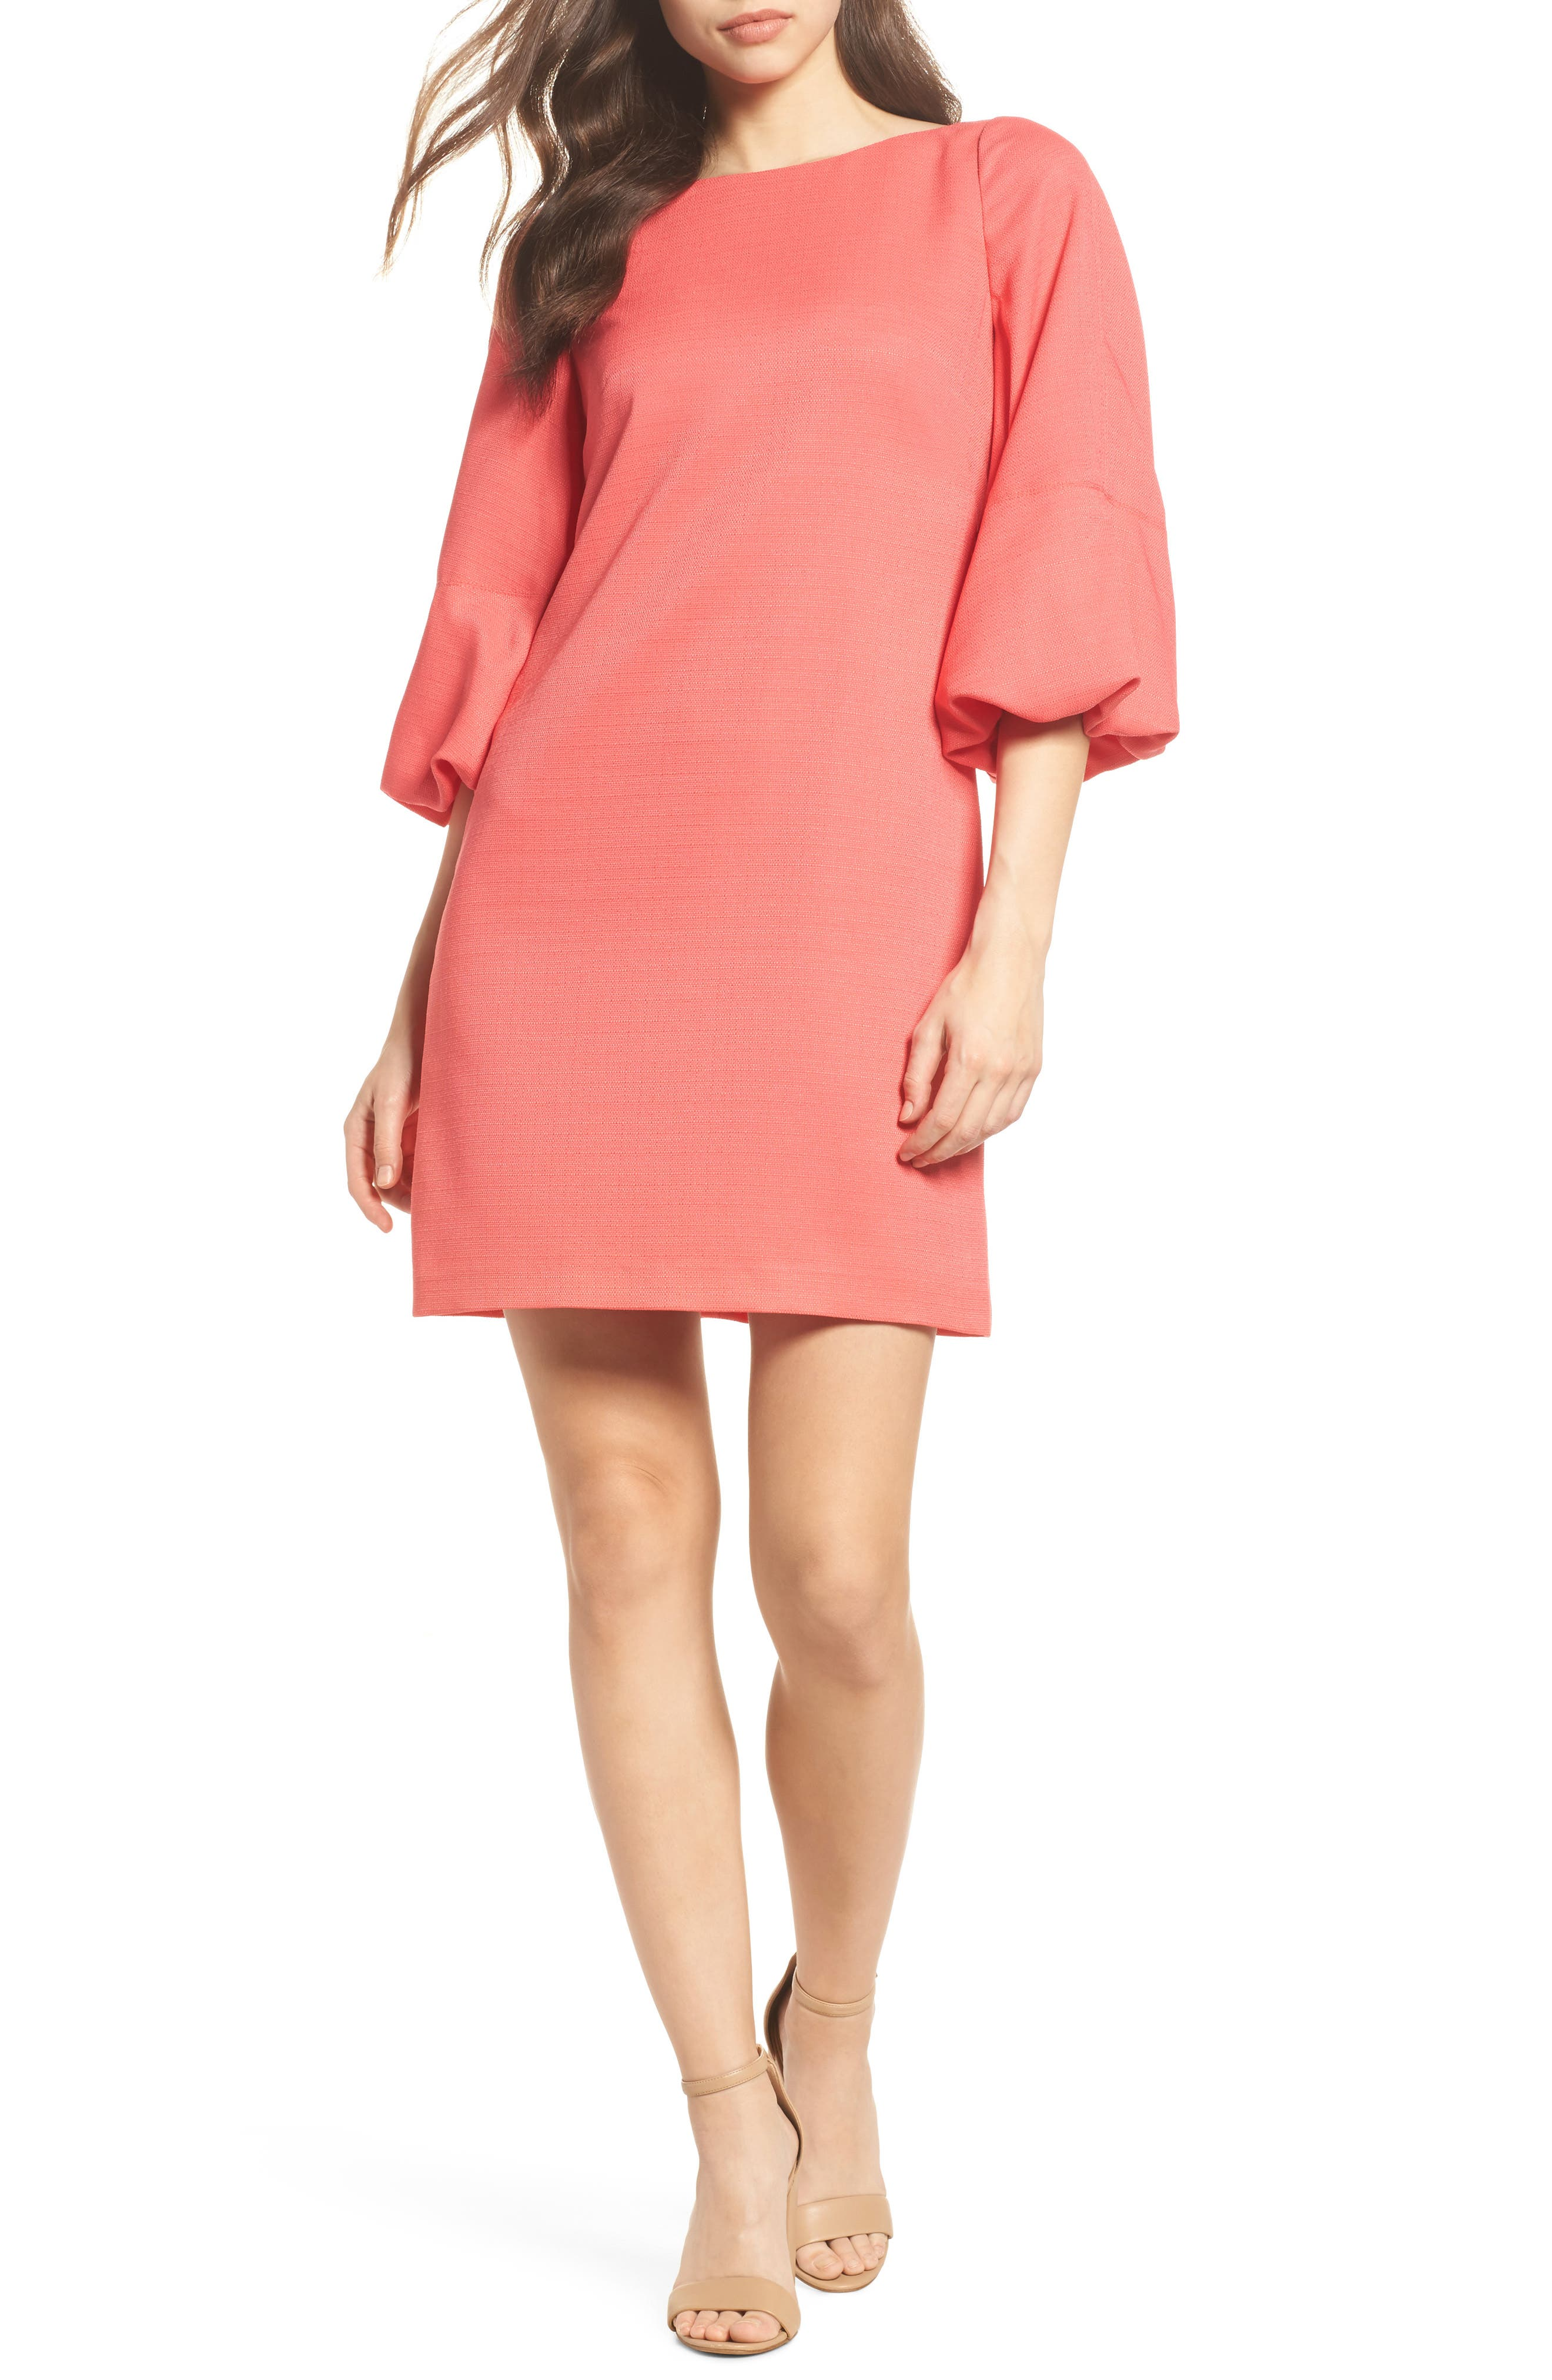 Alternate Image 1 Selected - Eliza J Puff Sleeve Shift Dress